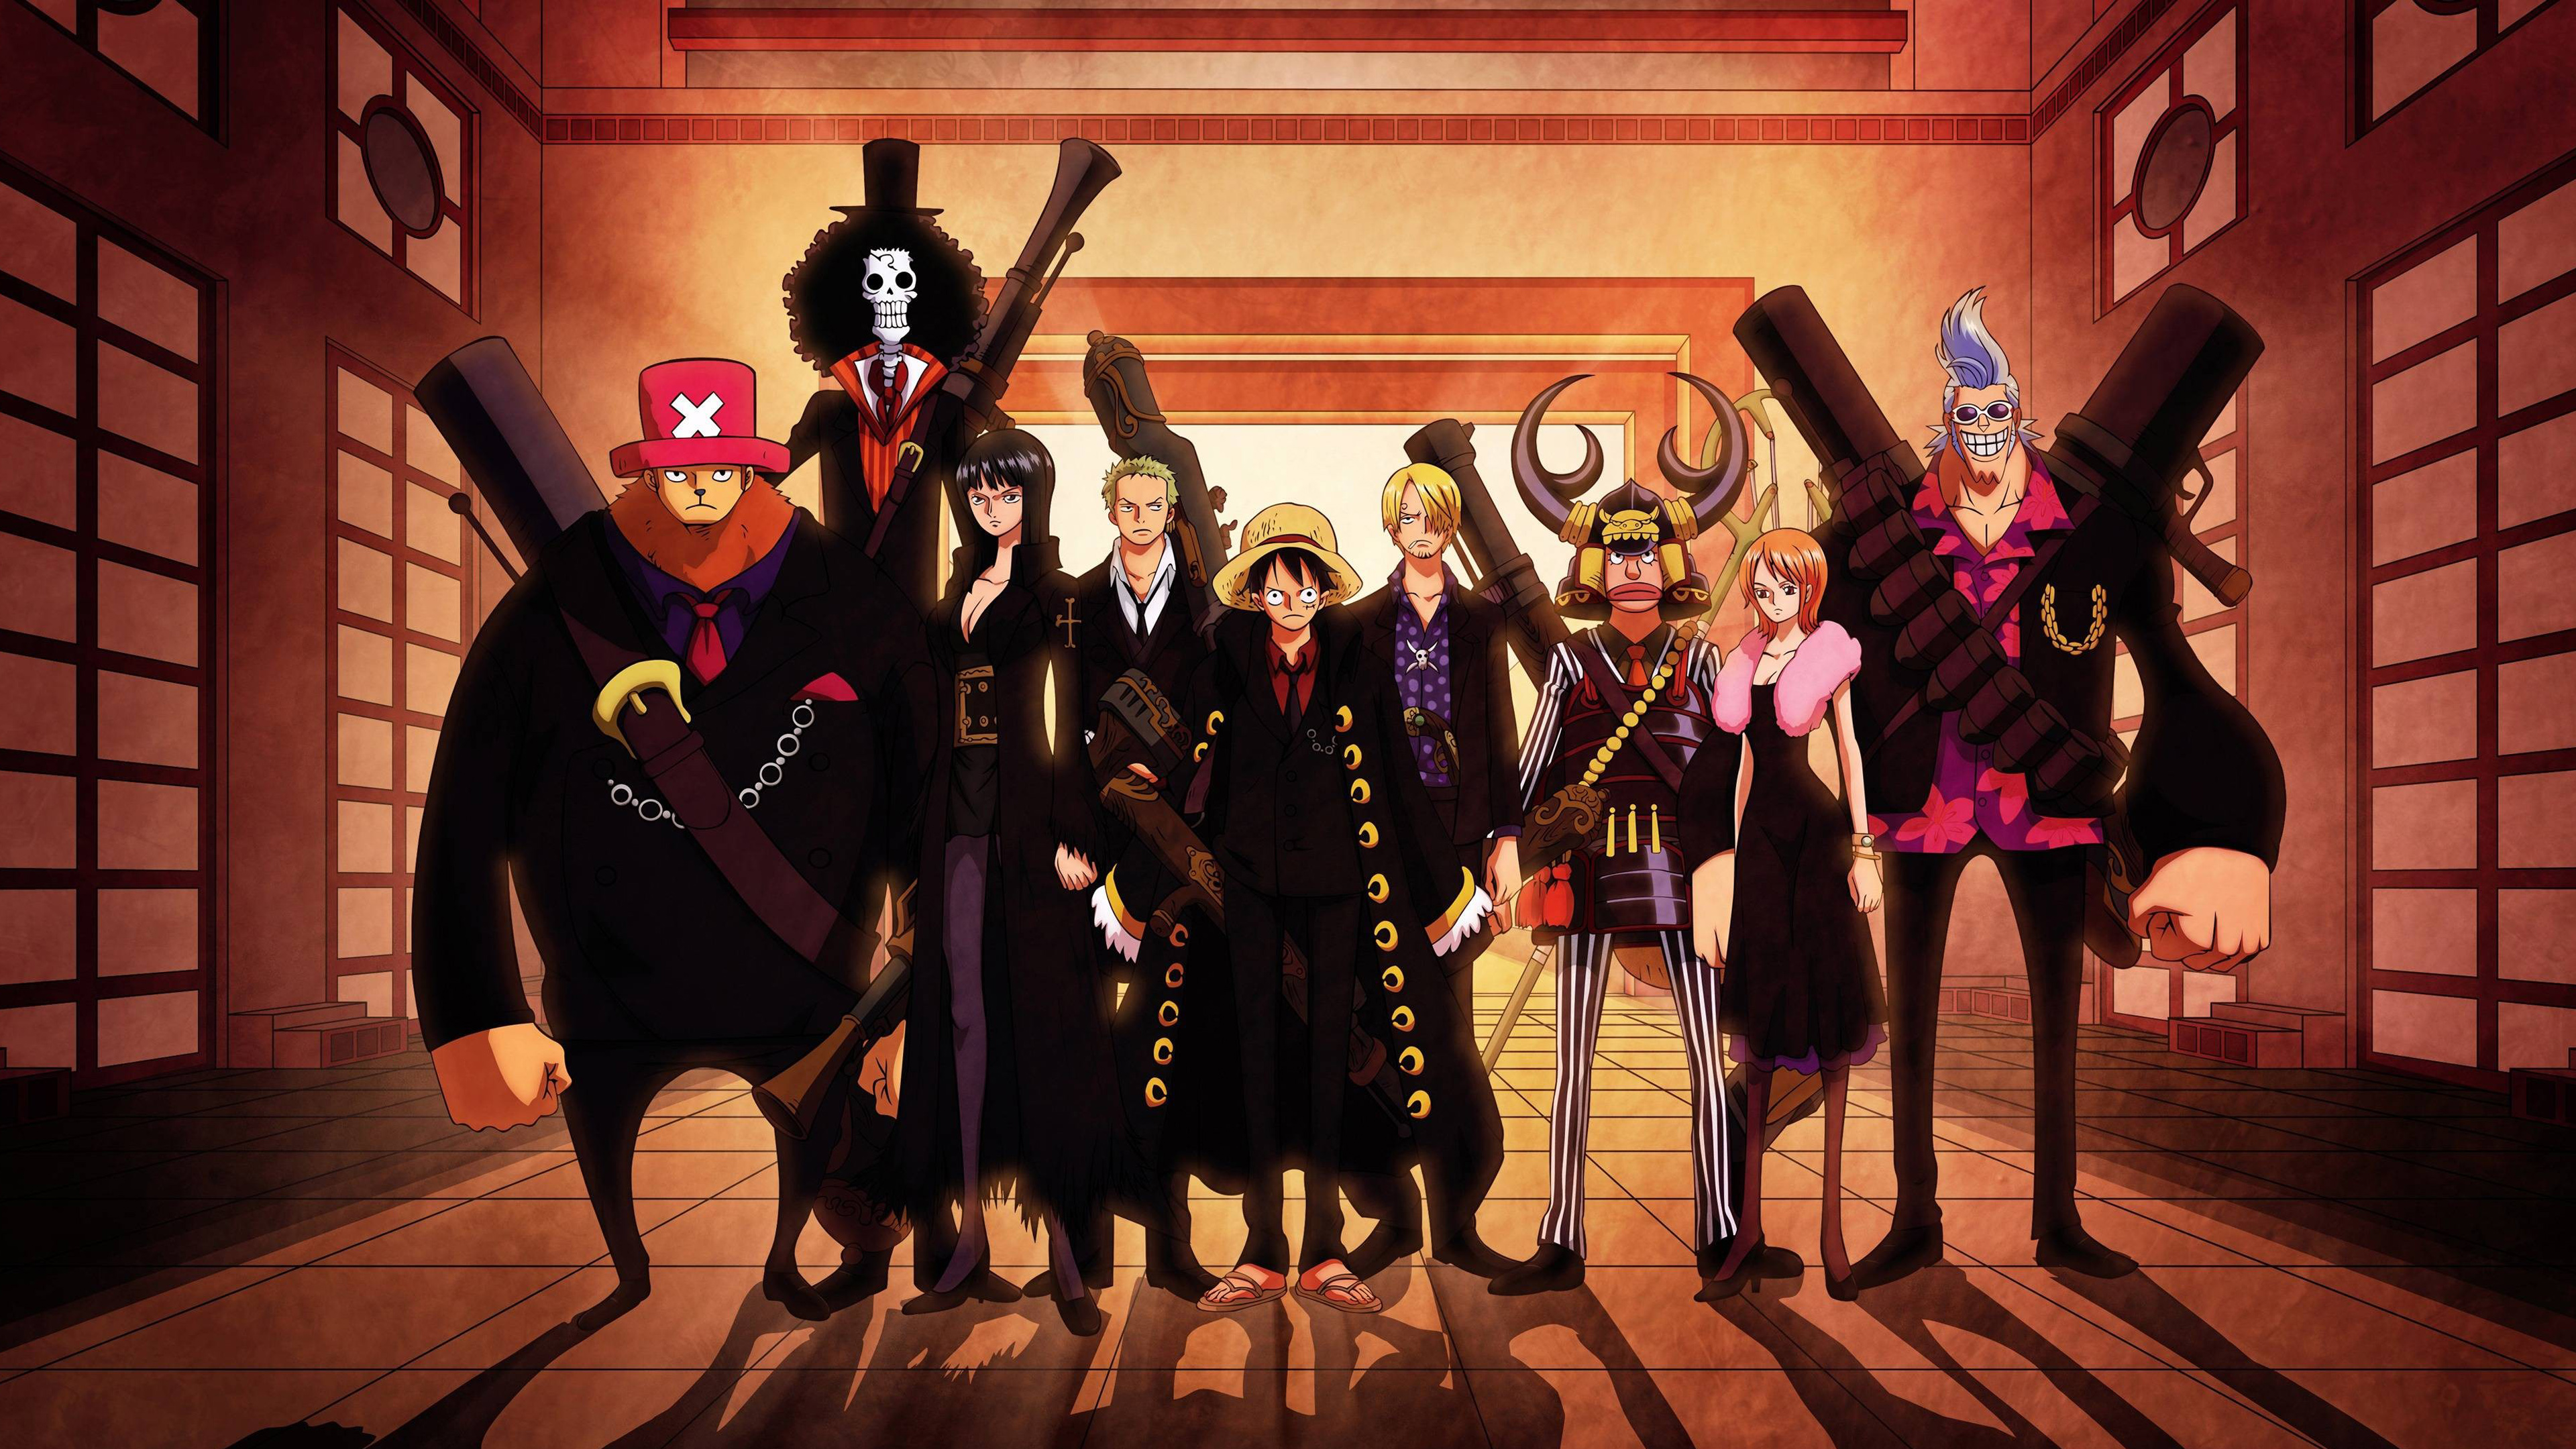 One Piece Anime1914018237 - One Piece Anime - Piece, Megumin, Anime